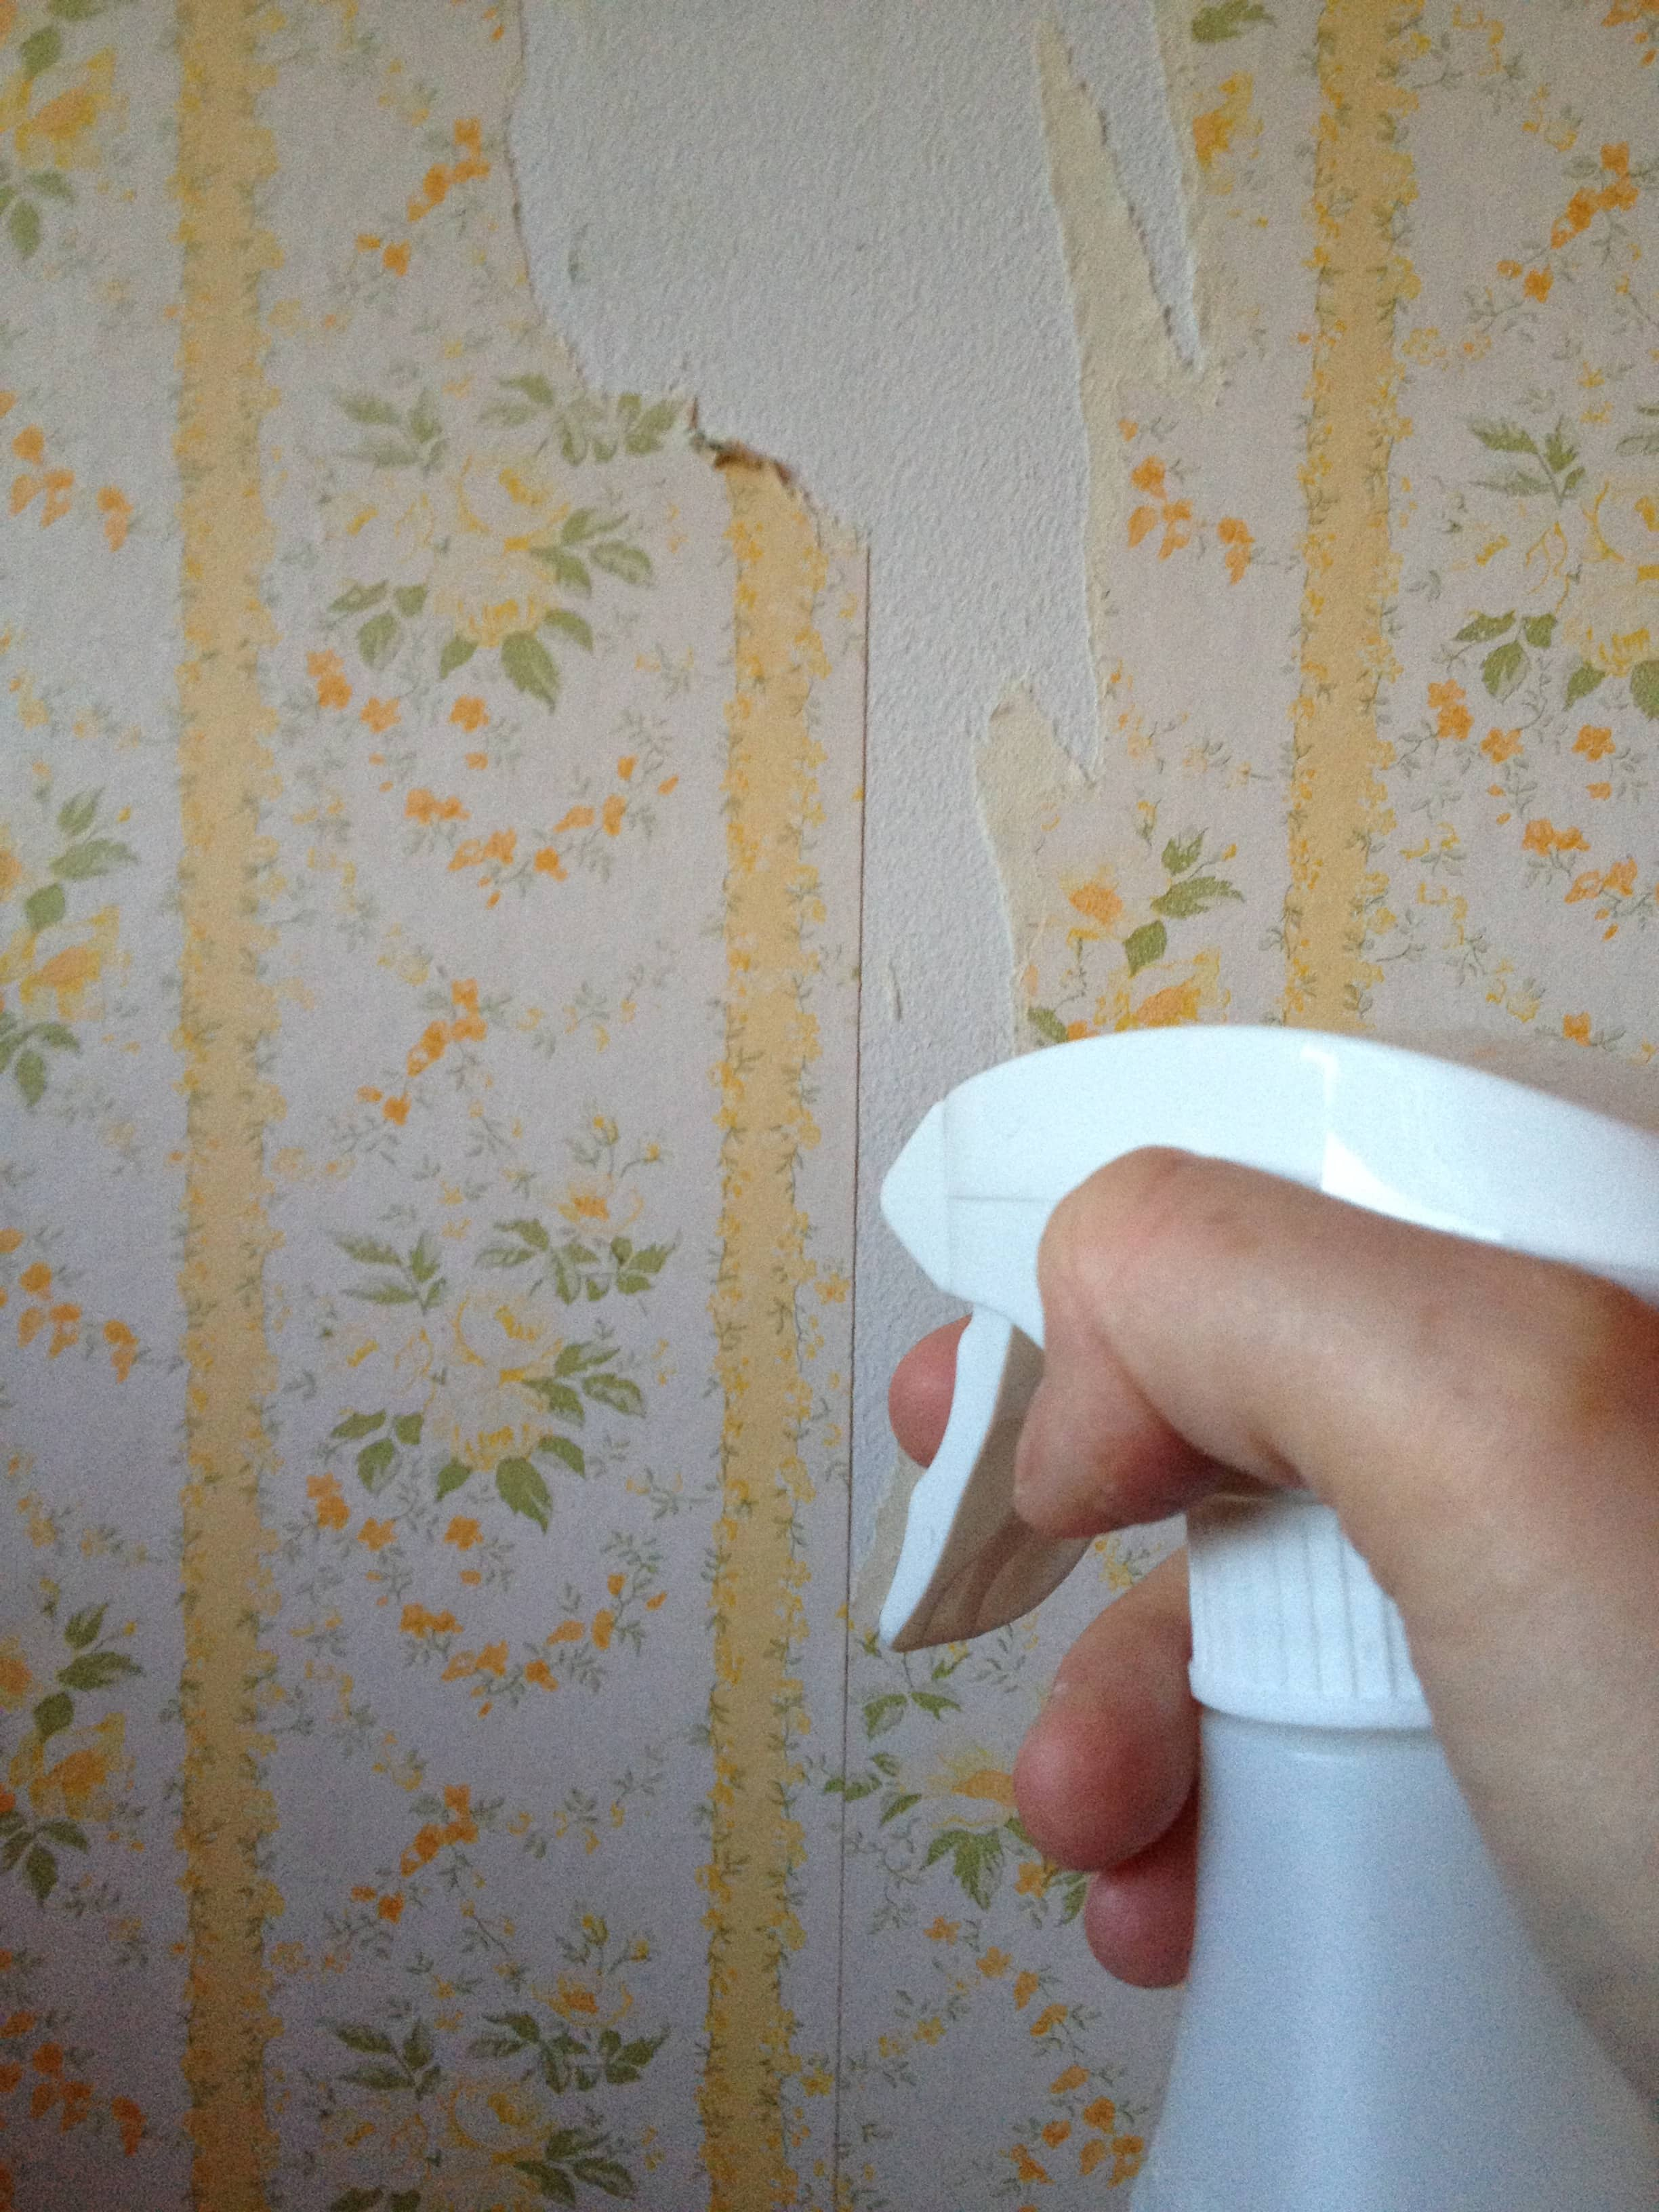 Easy & All Natural Wallpaper Removal Tip: Use Vinegar and Hot Water